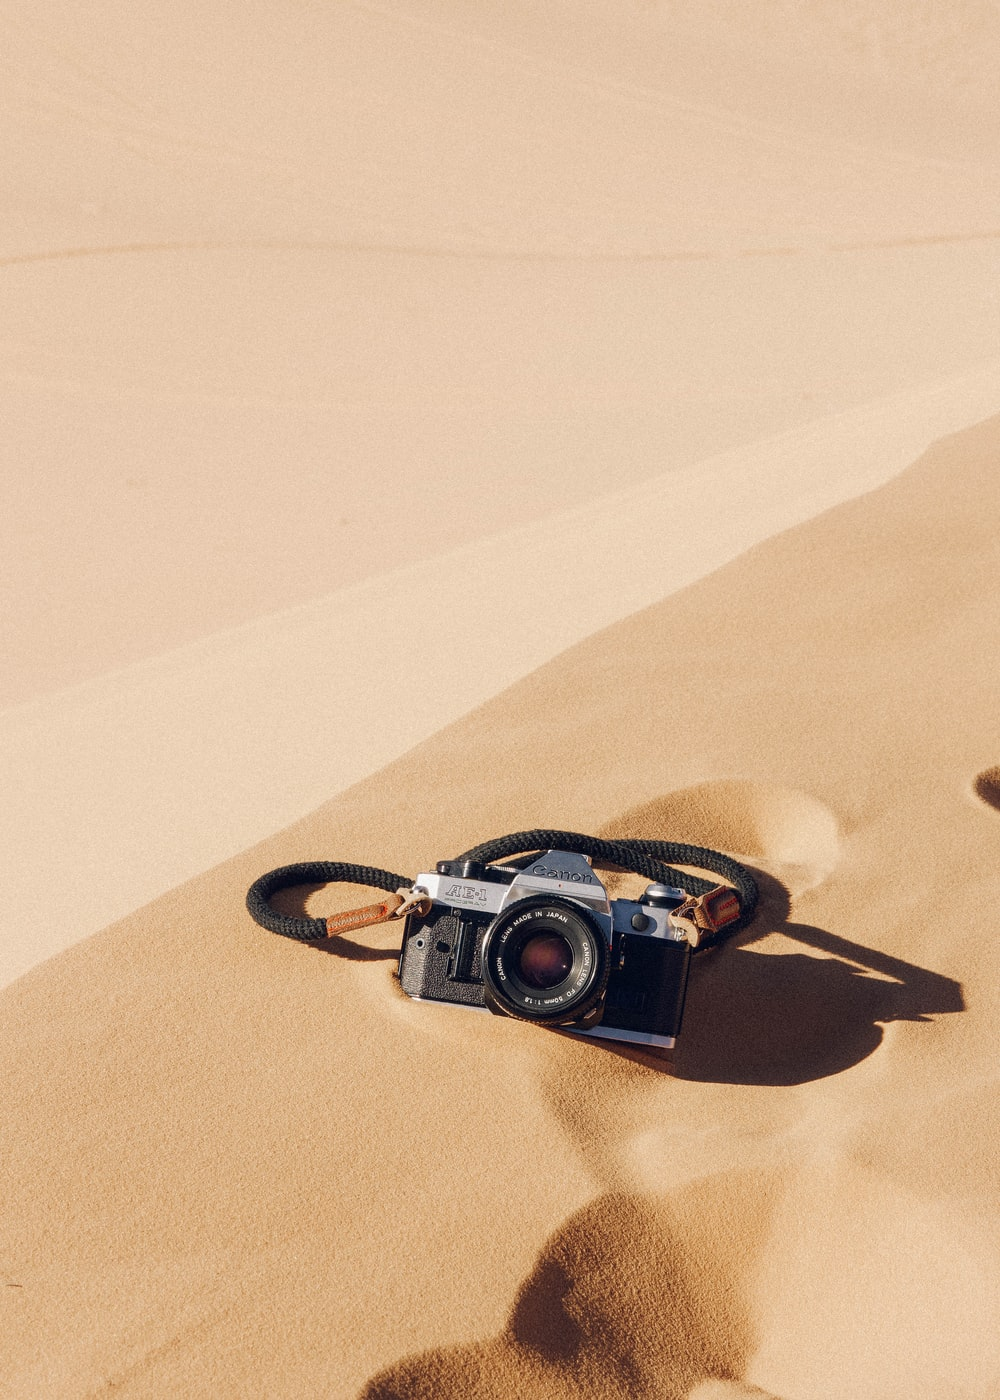 black and silver dslr camera on brown sand